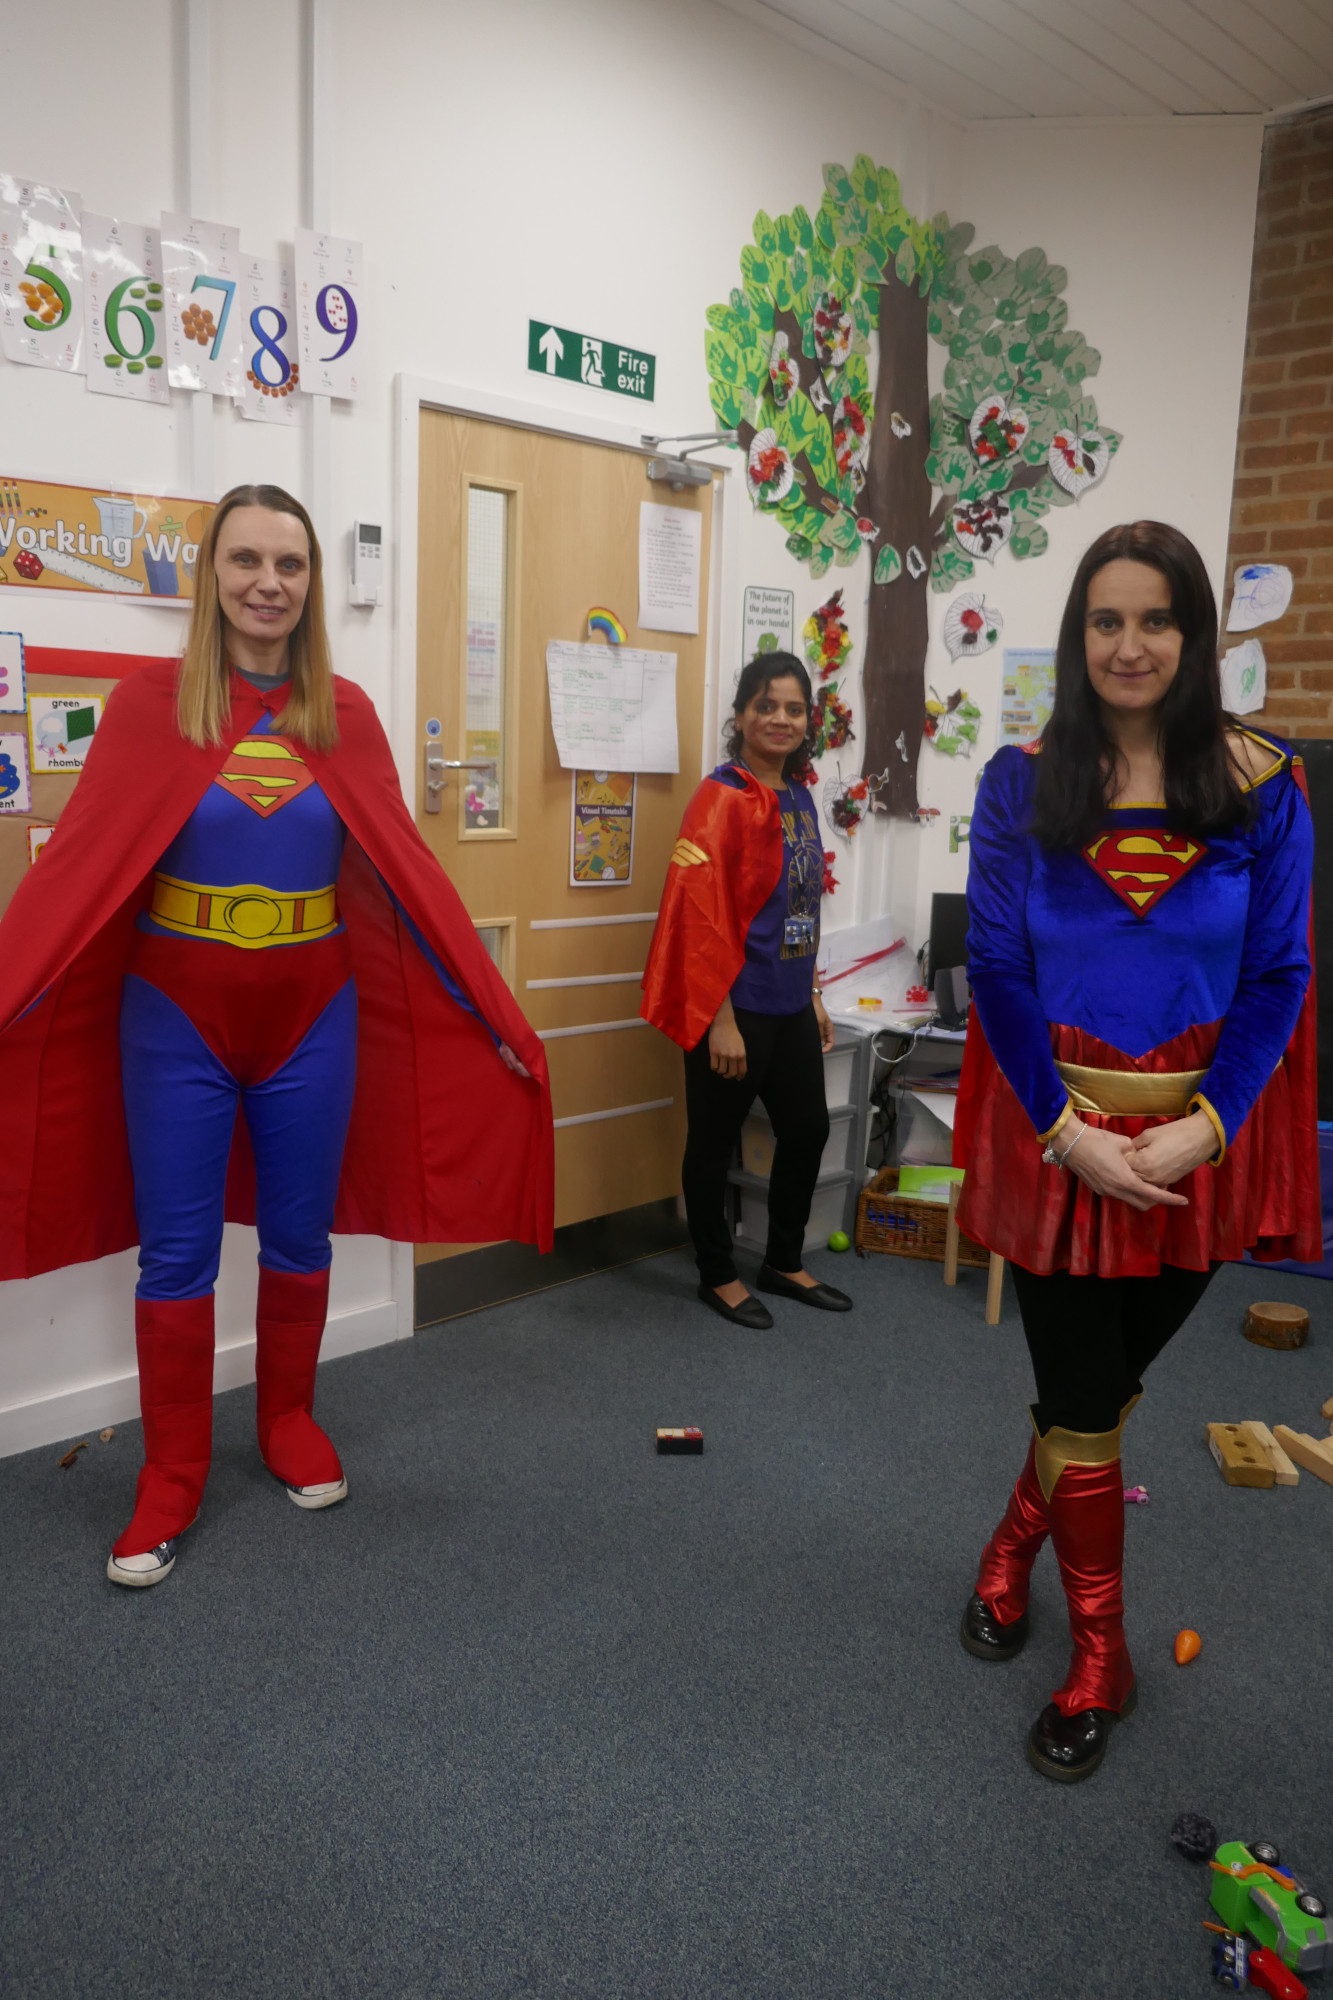 Staff dressed up as super heroes